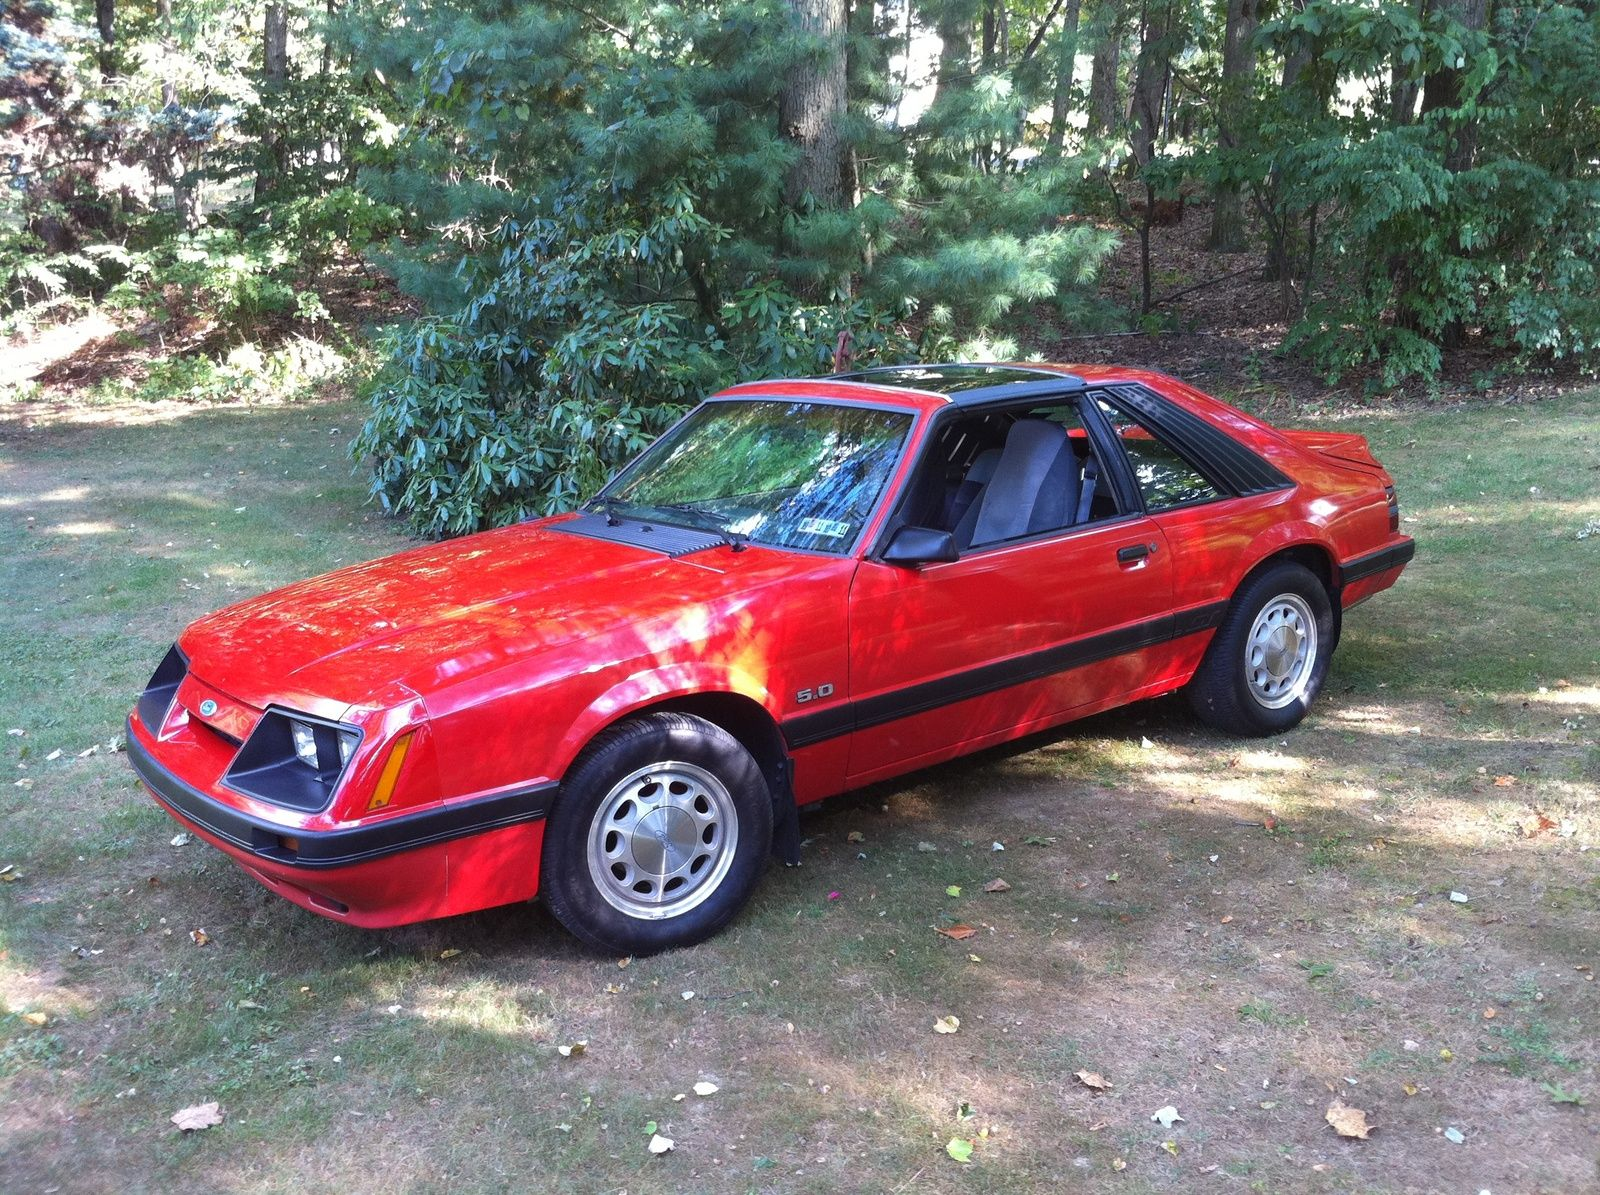 1986 Ford Mustang Gt With T Tops This Was A Very Fast And Fun Car I Traded It For An 89 Mustang Gt But If I Could Mustang Gt Mustang Cars Fox